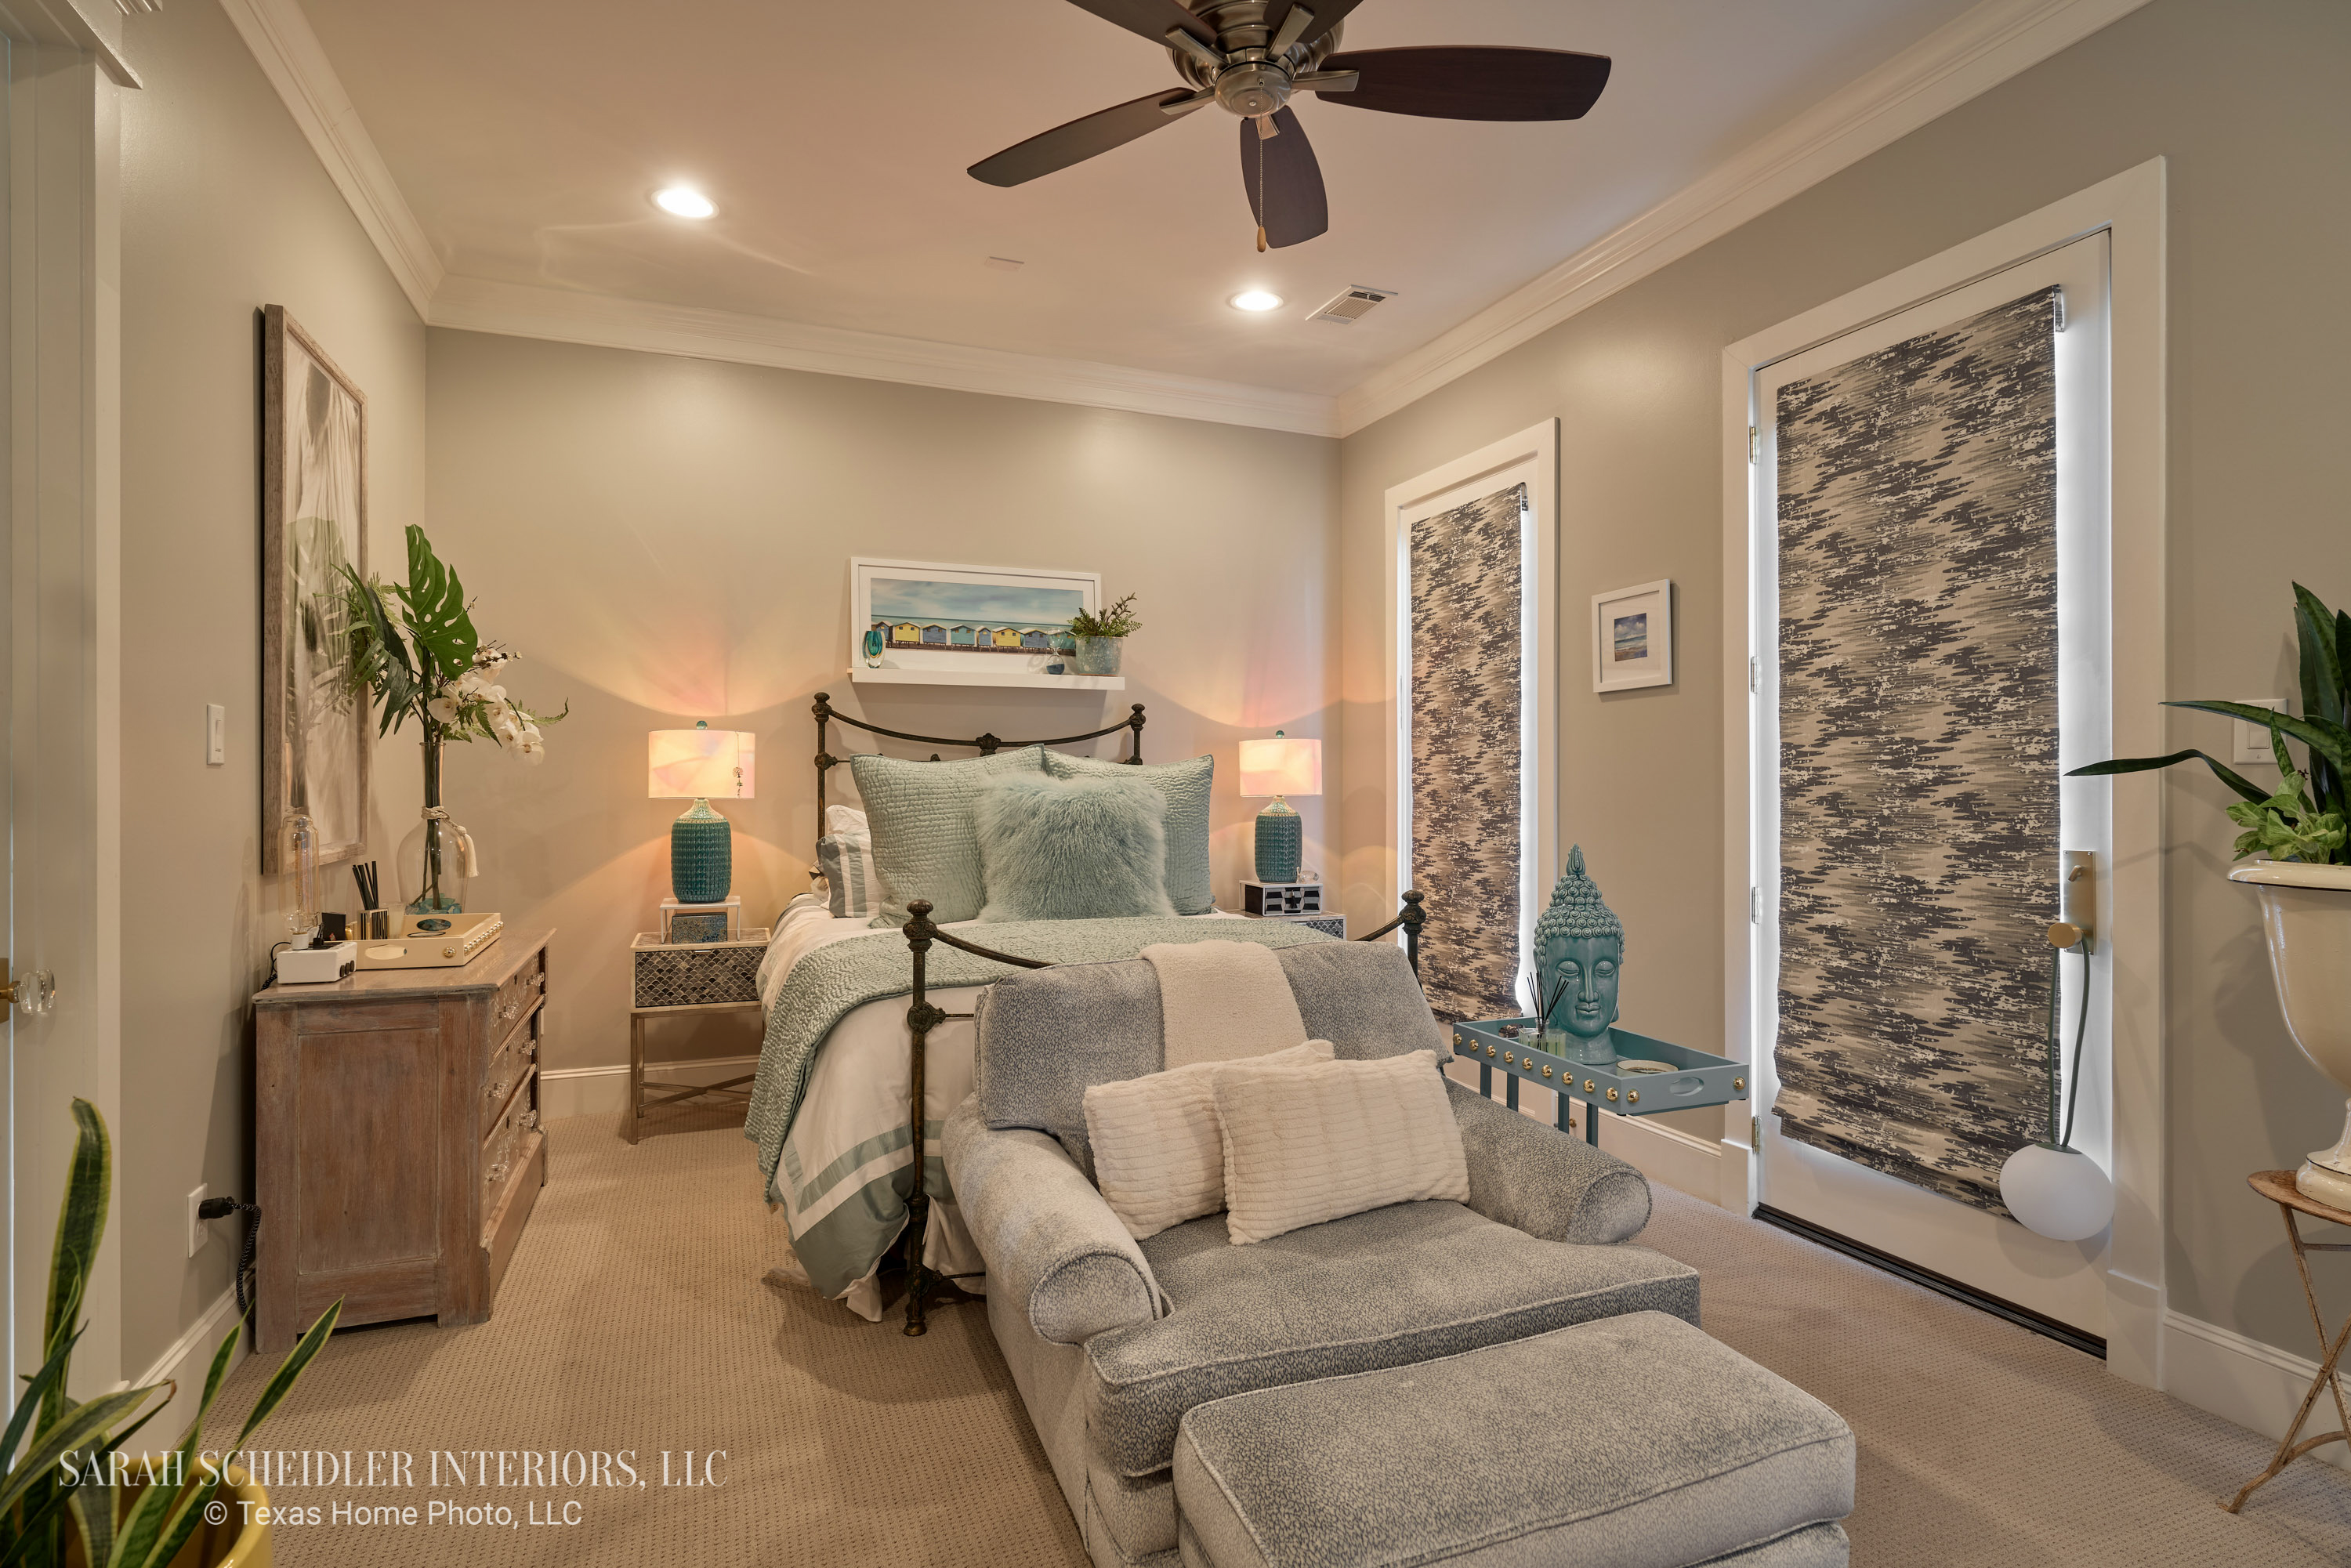 Fun, Colorful, and Eclectic Master Bedroom Design with Turquoise Accents